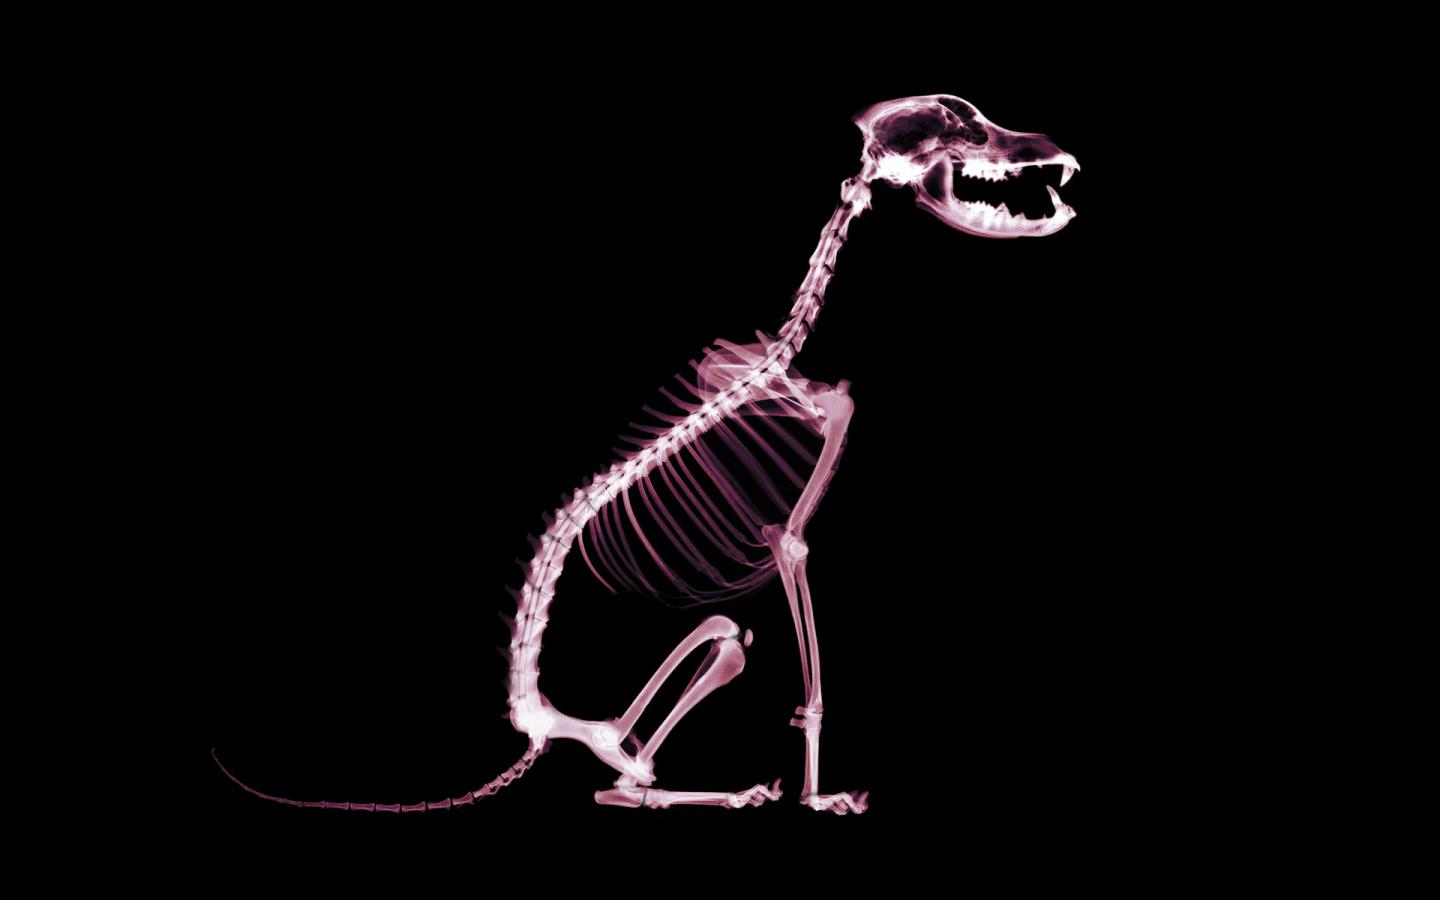 x-rays, texture, background, download photo, dog x-ray texture background